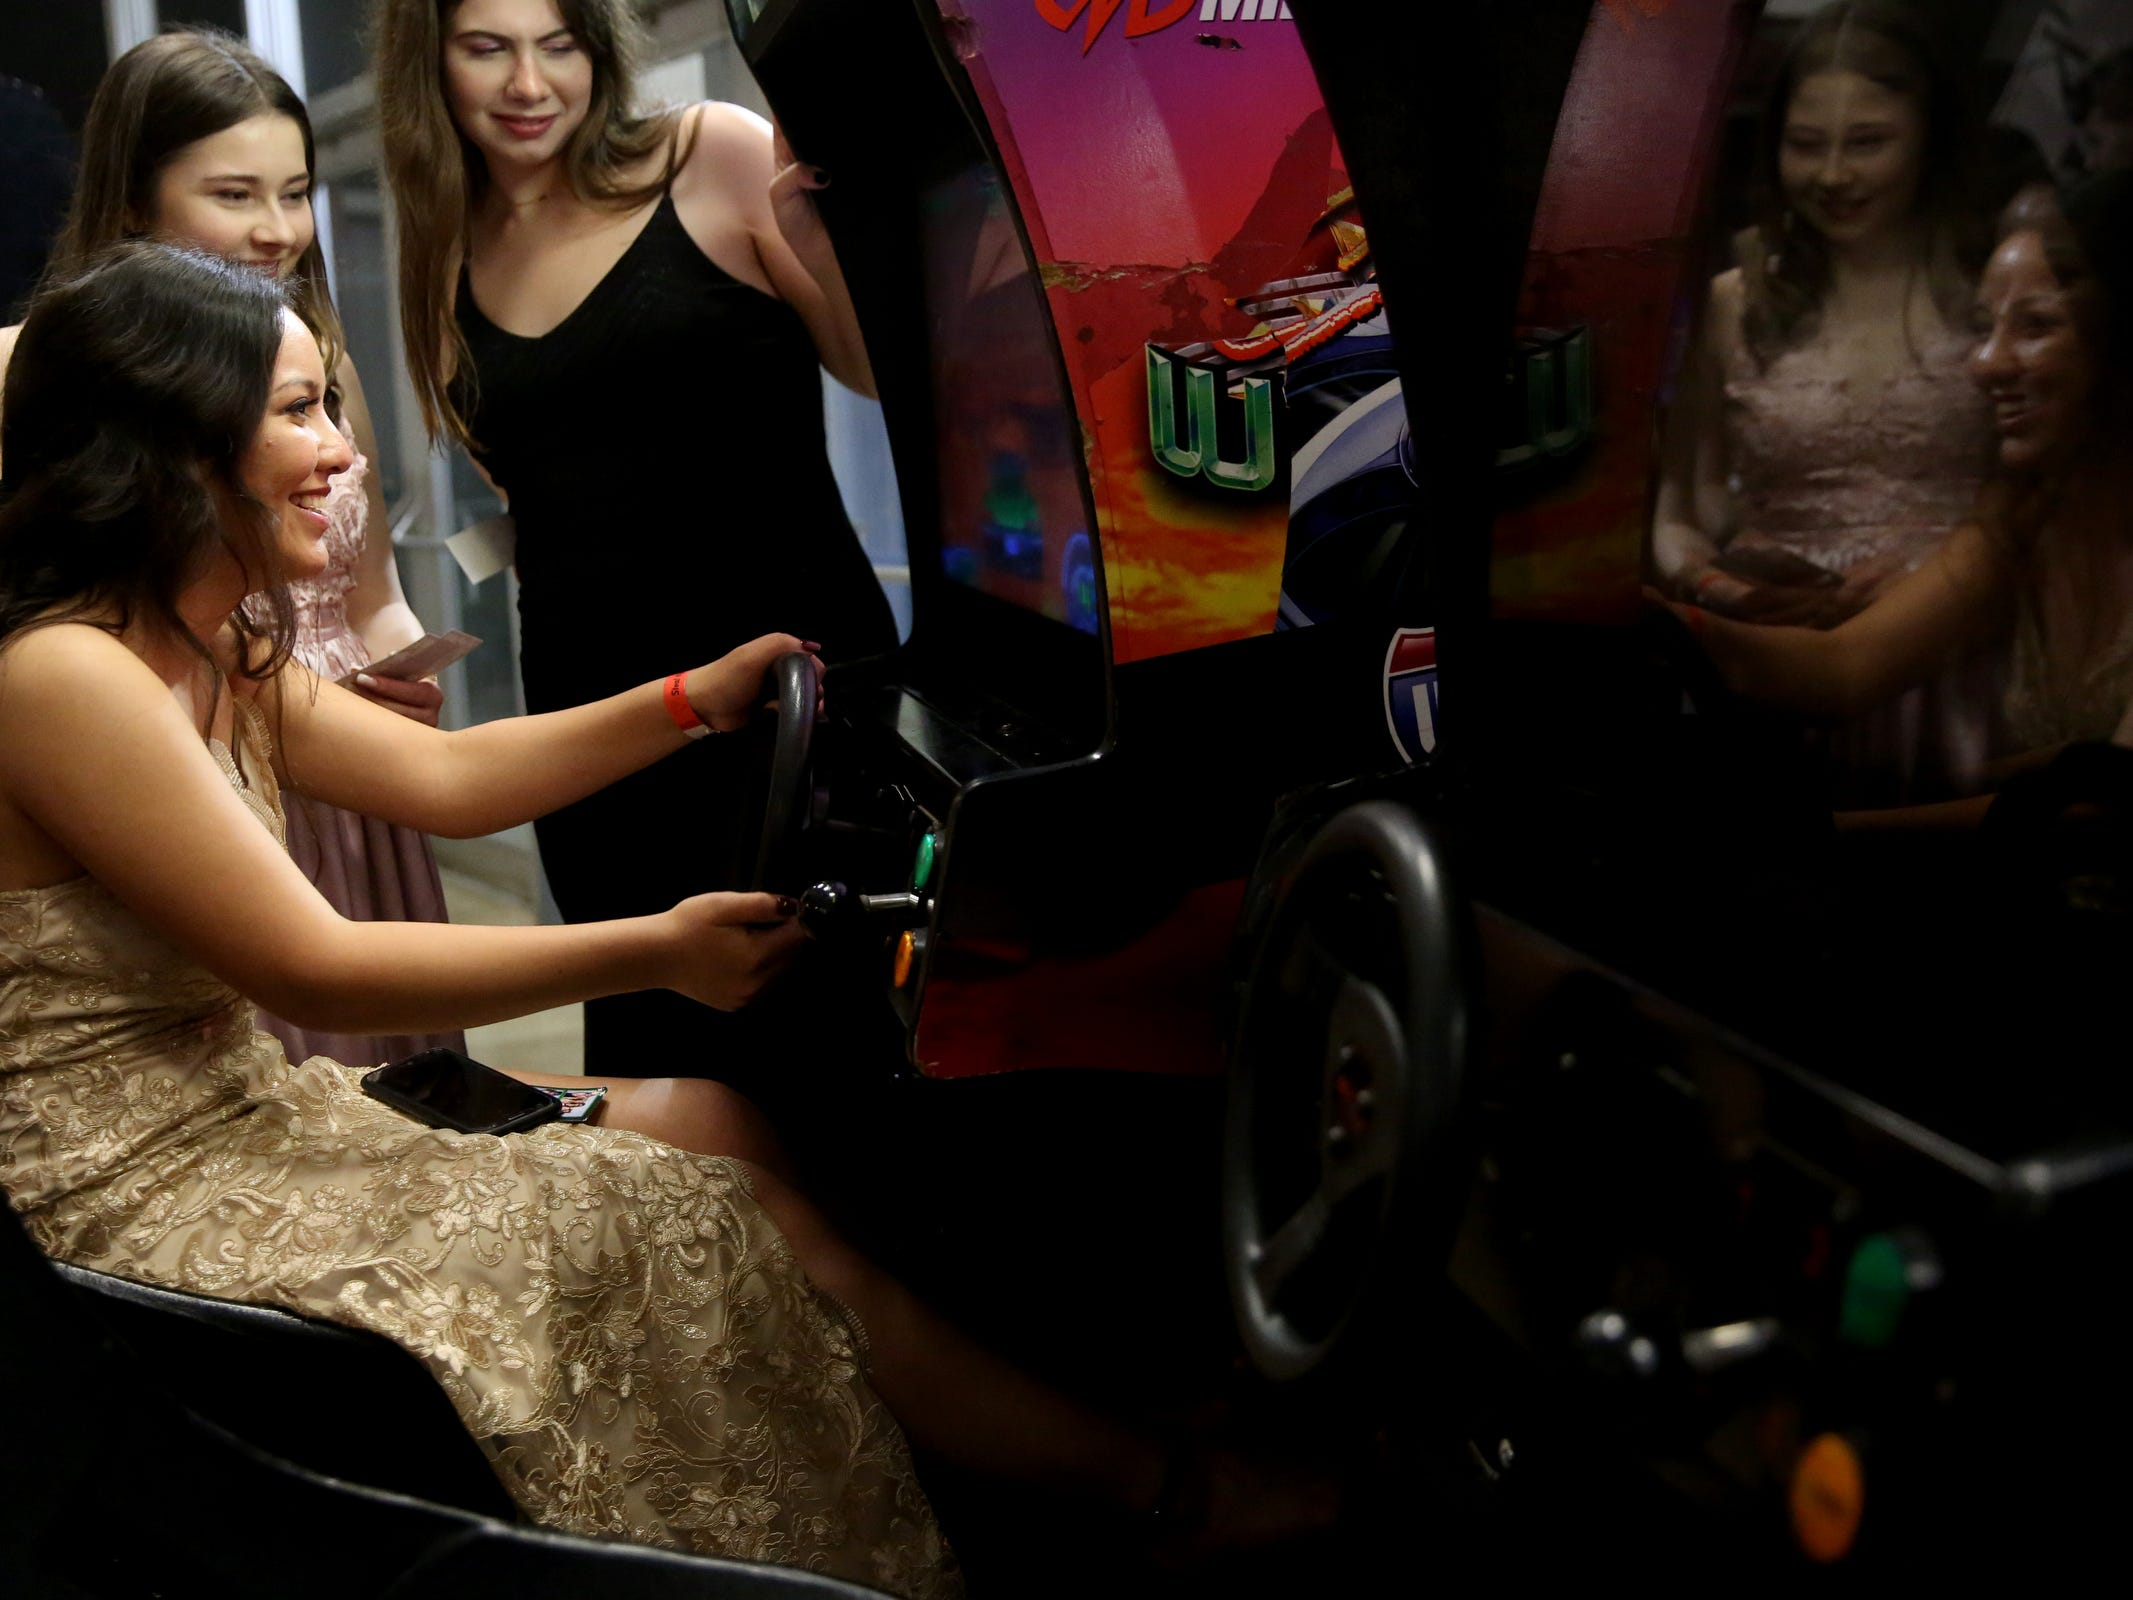 Chrissa Wilkie, a senior, plays a racing game during the West Salem High School prom at Salem Armory Auditorium on April 13, 2019.